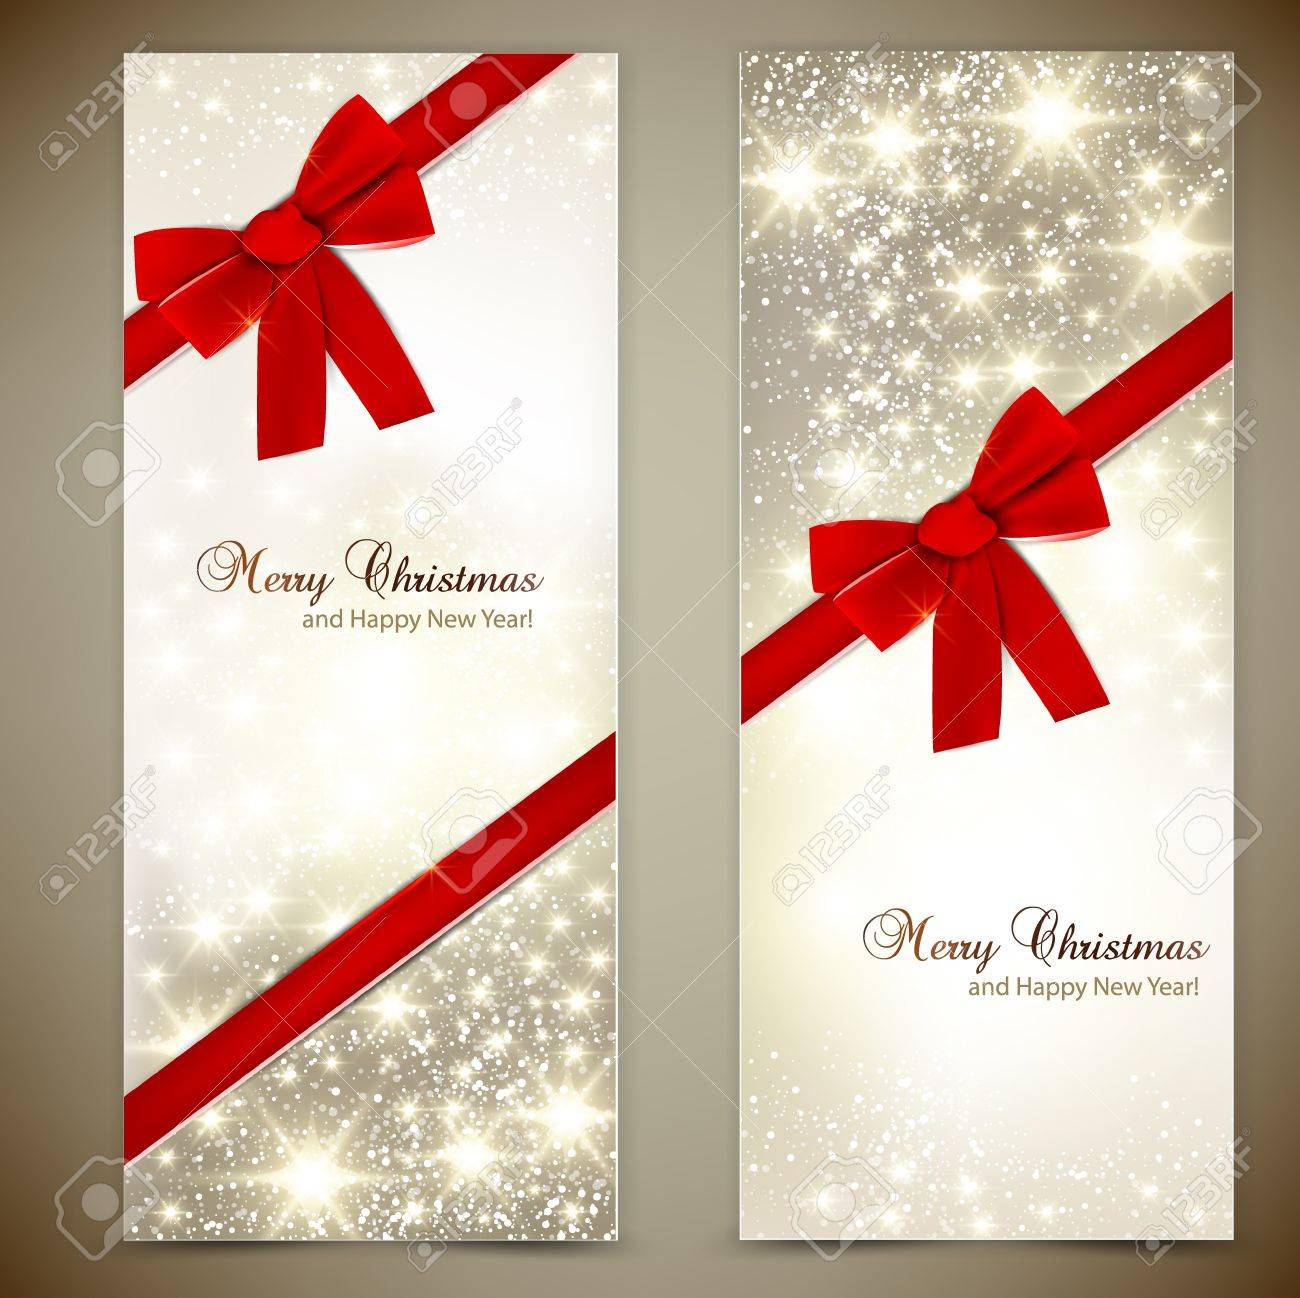 Greeting cards with red bows and copy space. Stock Vector - 16112867